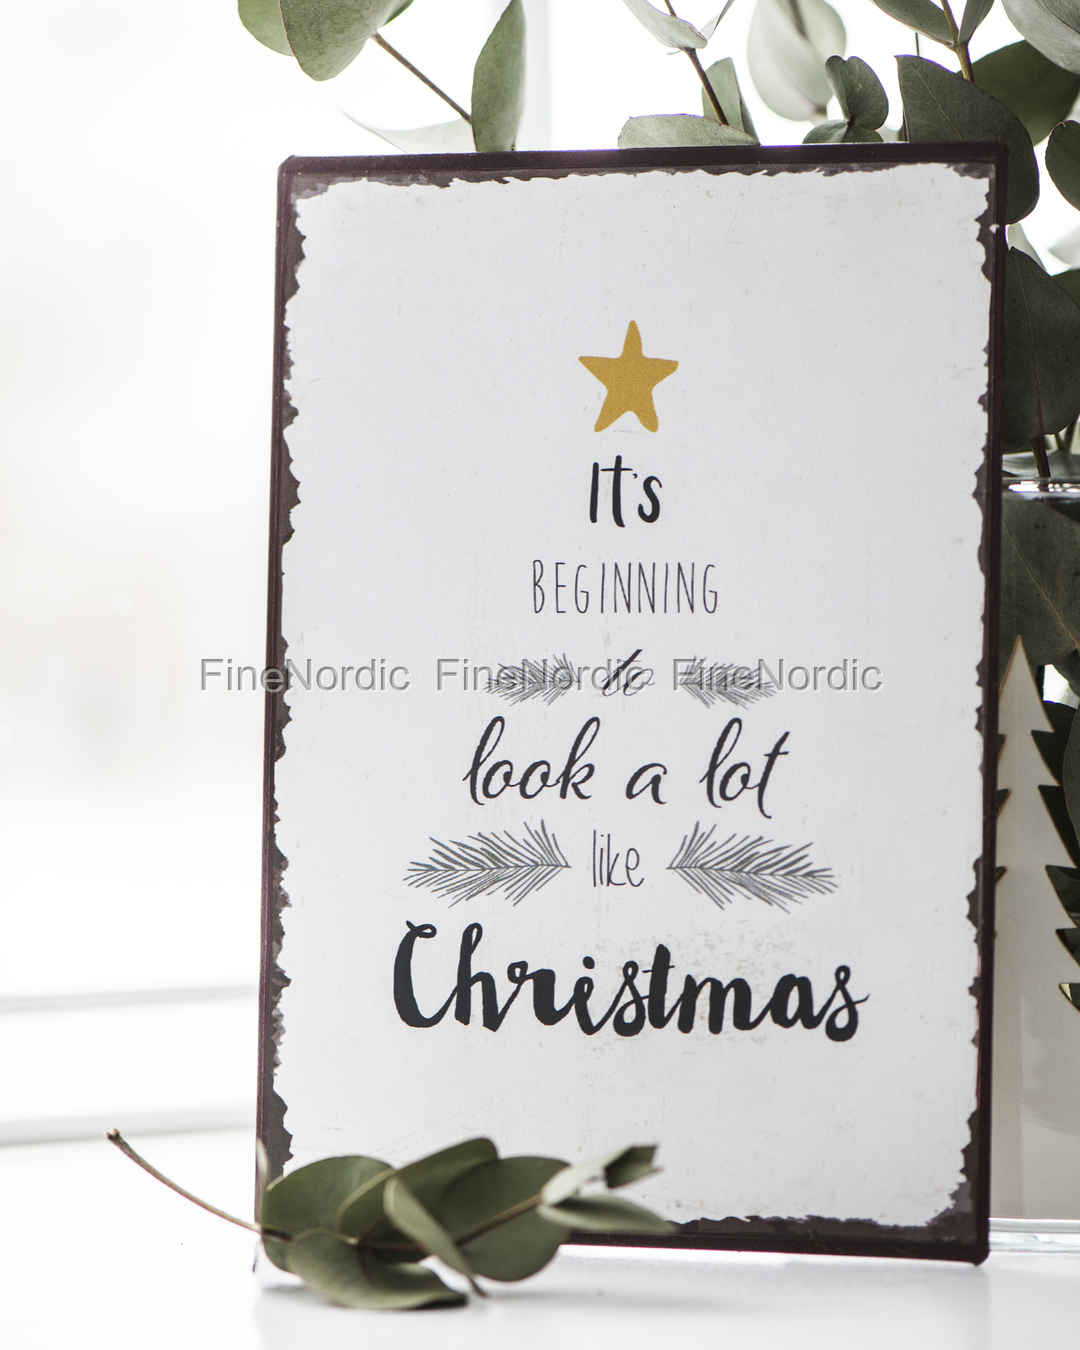 Ib Laursen Metal Sign It\'s Beginning to Look a Lot Like Christmas